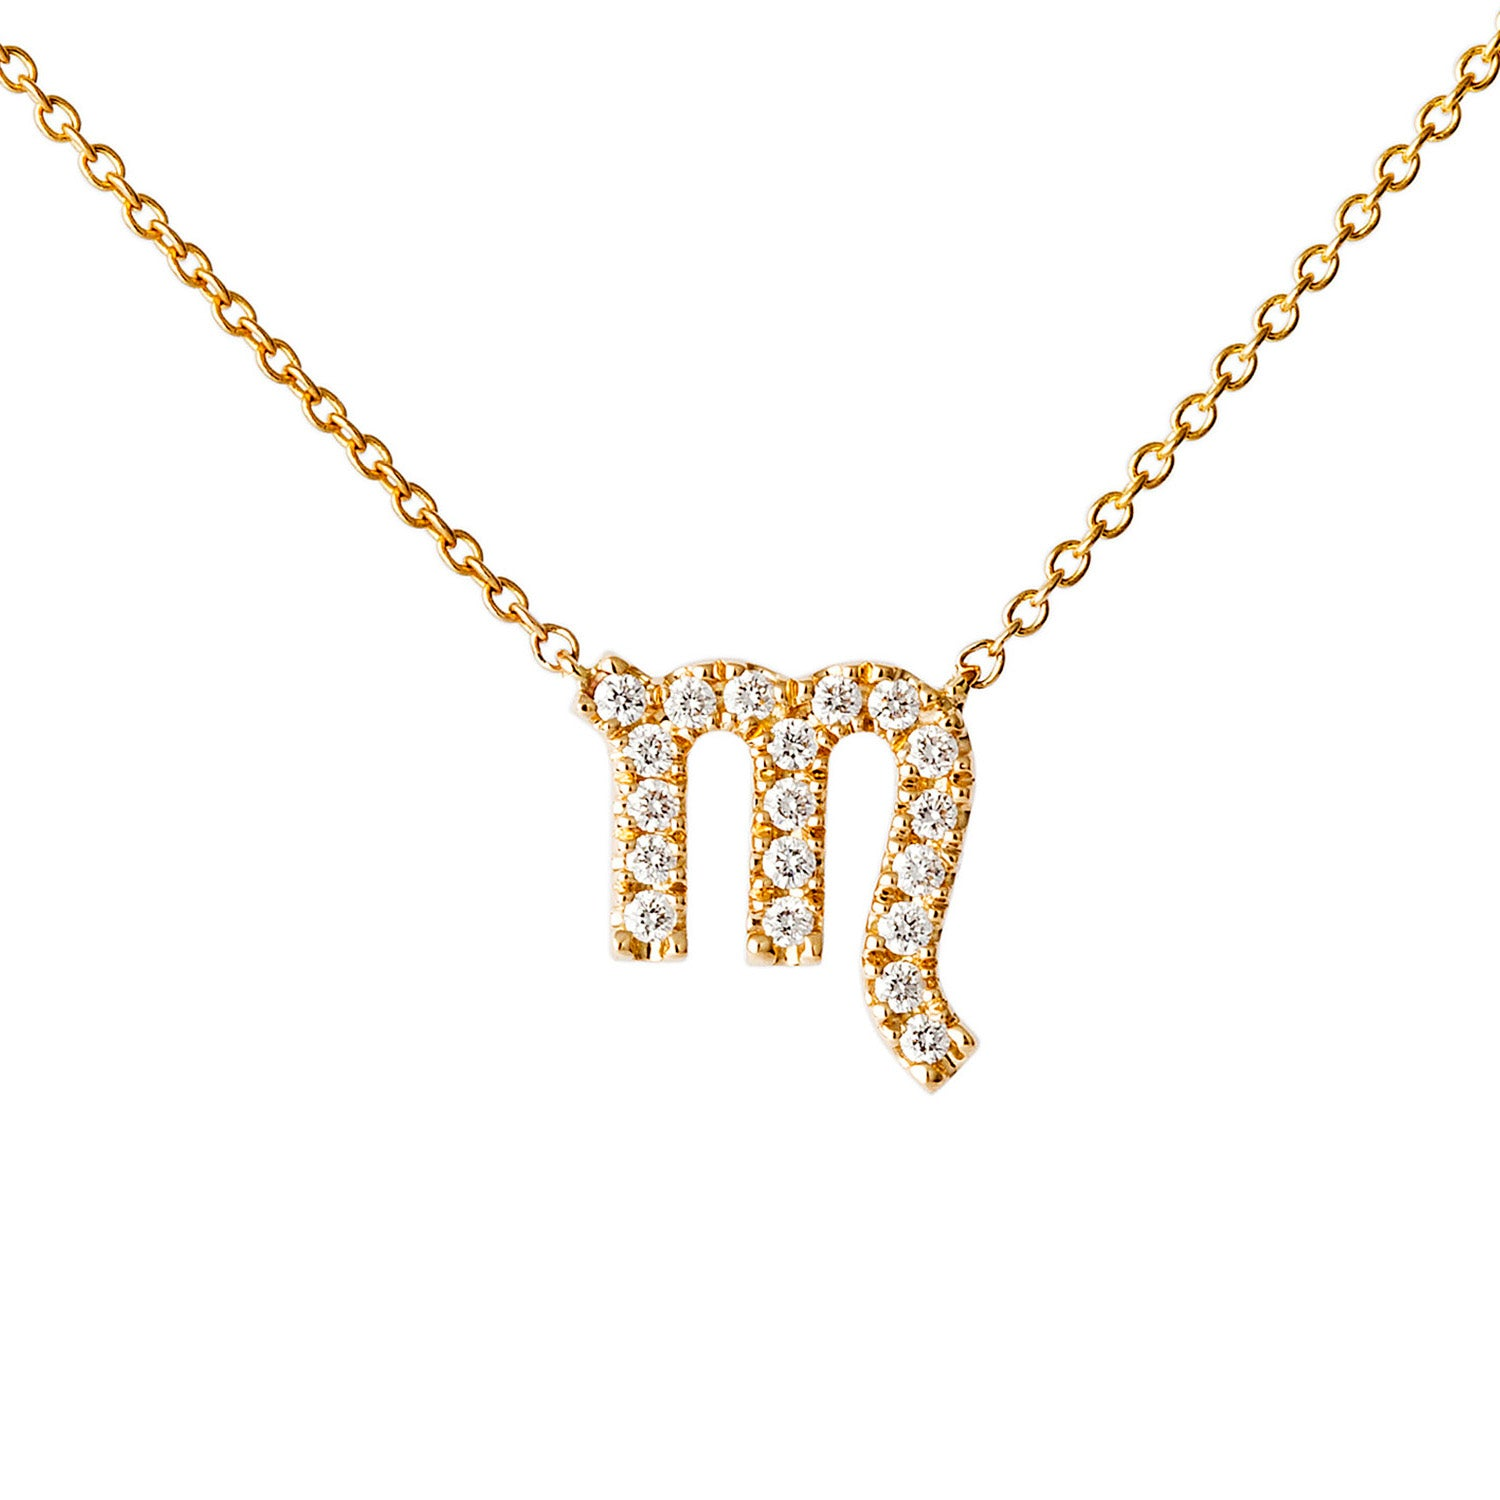 Petit Scorpio Necklace - Engelbert - Necklaces | Broken English Jewelry